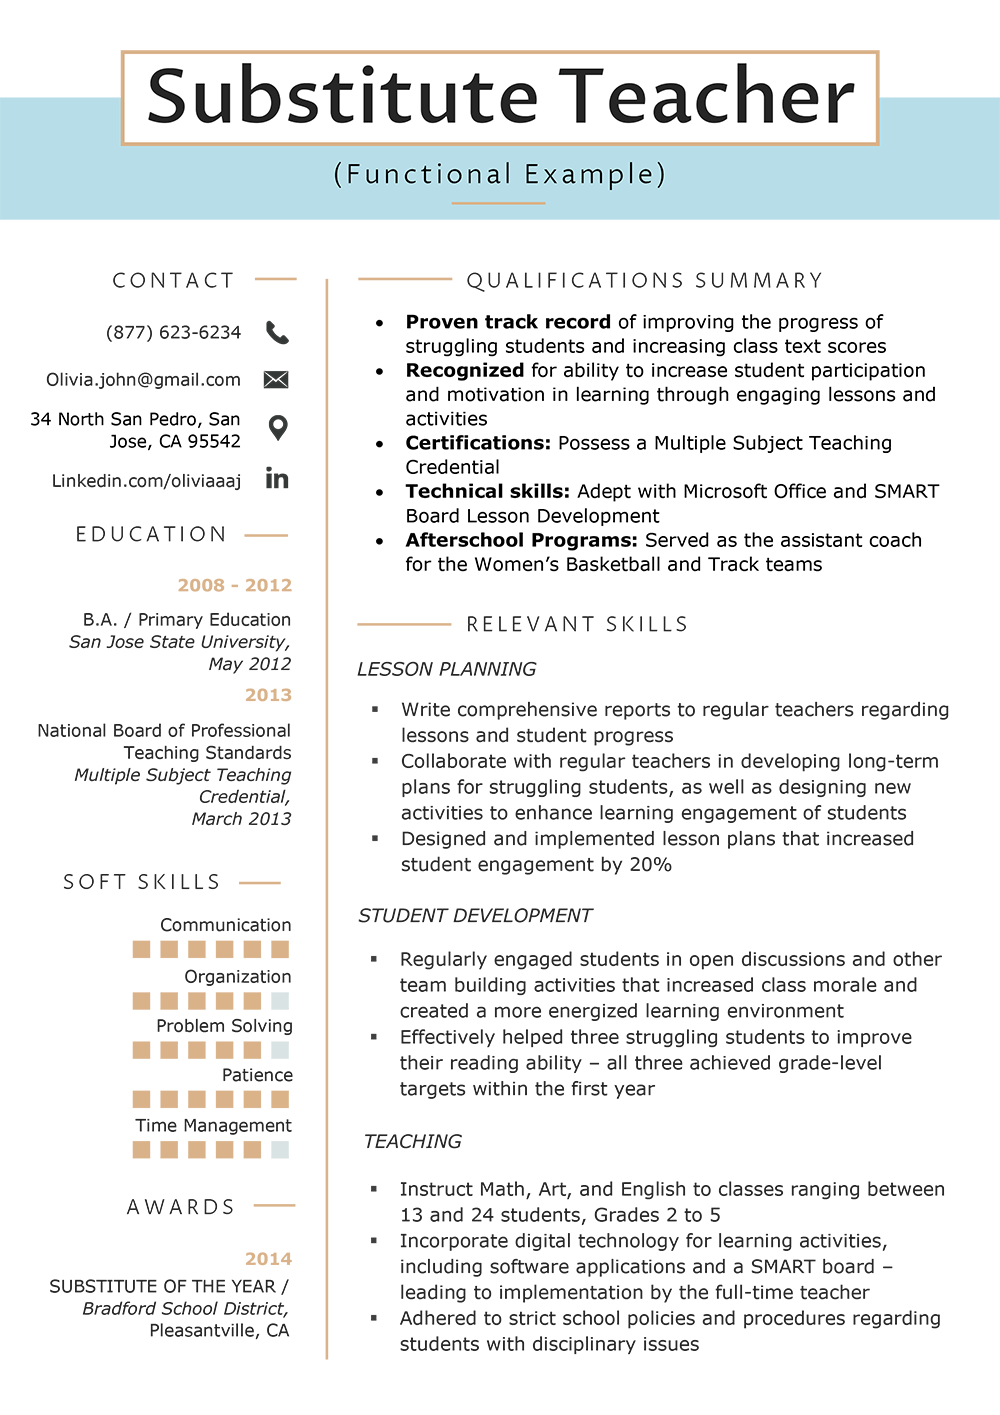 Functional Resume Template Functional Substitute Teacher Resume Sample functional resume template|wikiresume.com